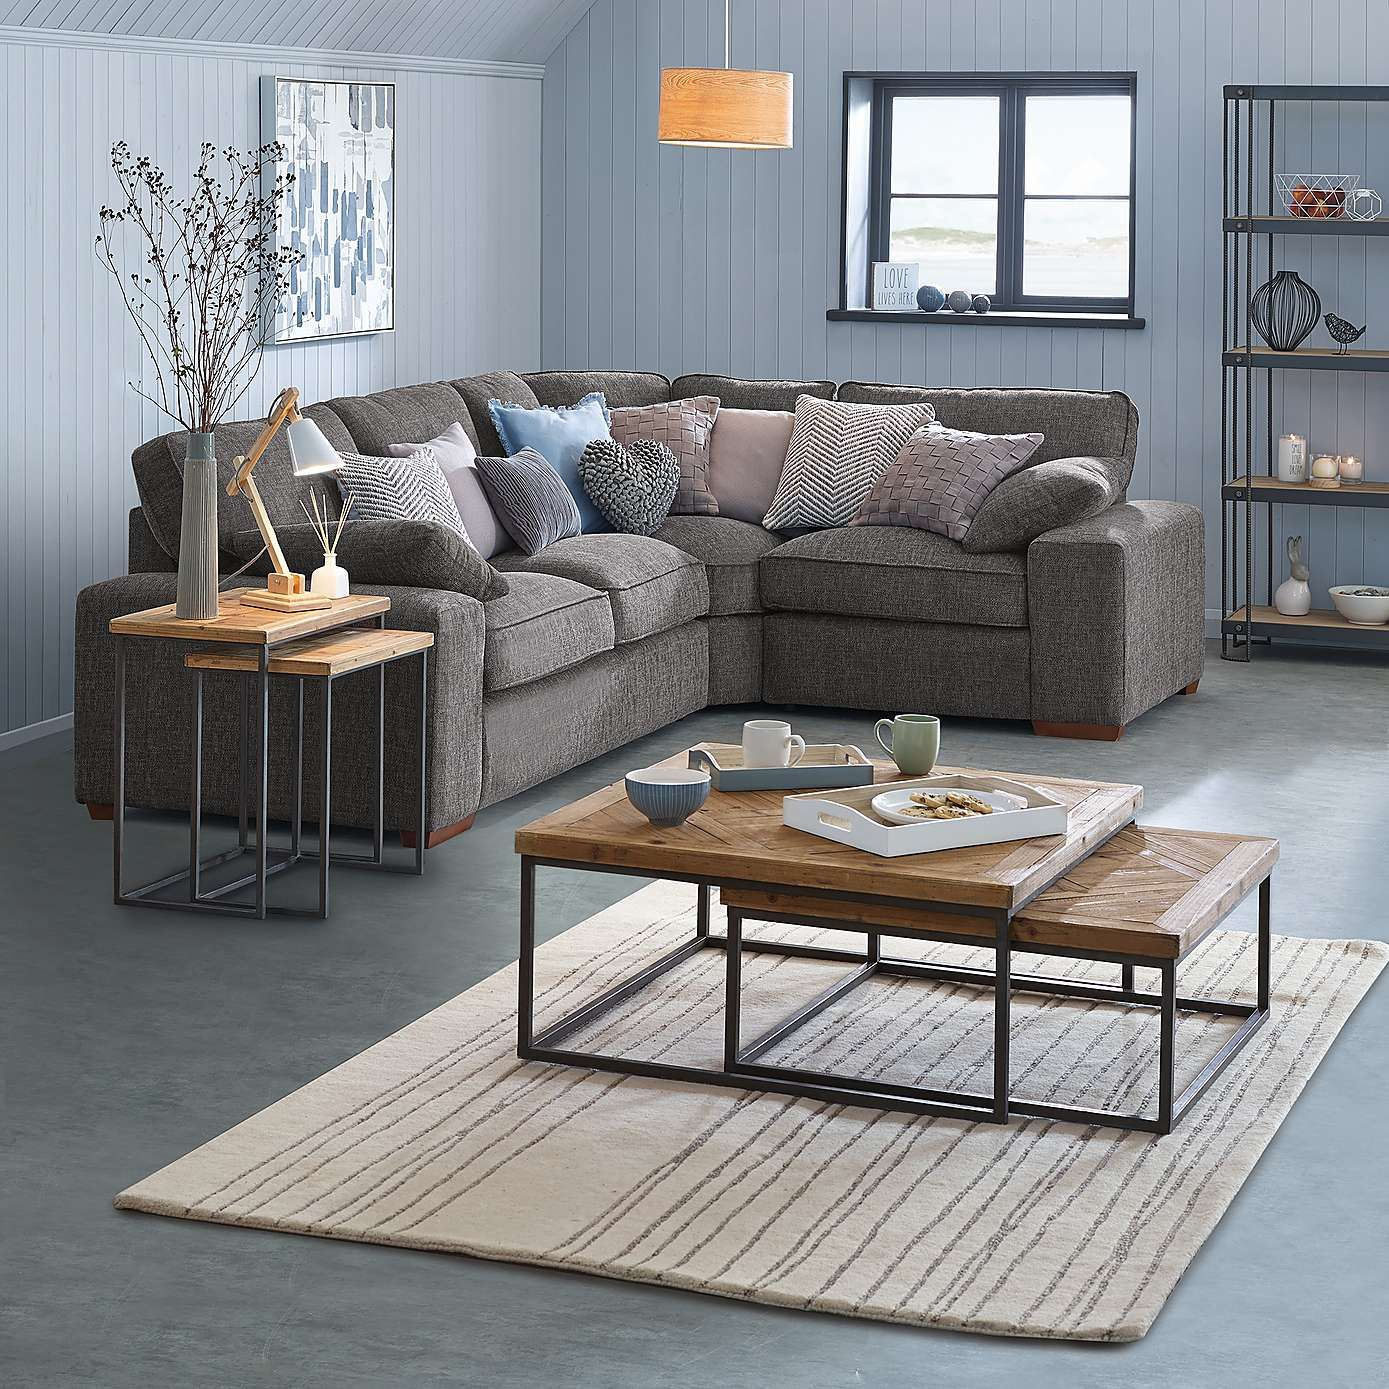 Top Dunelm Living Room Furniture